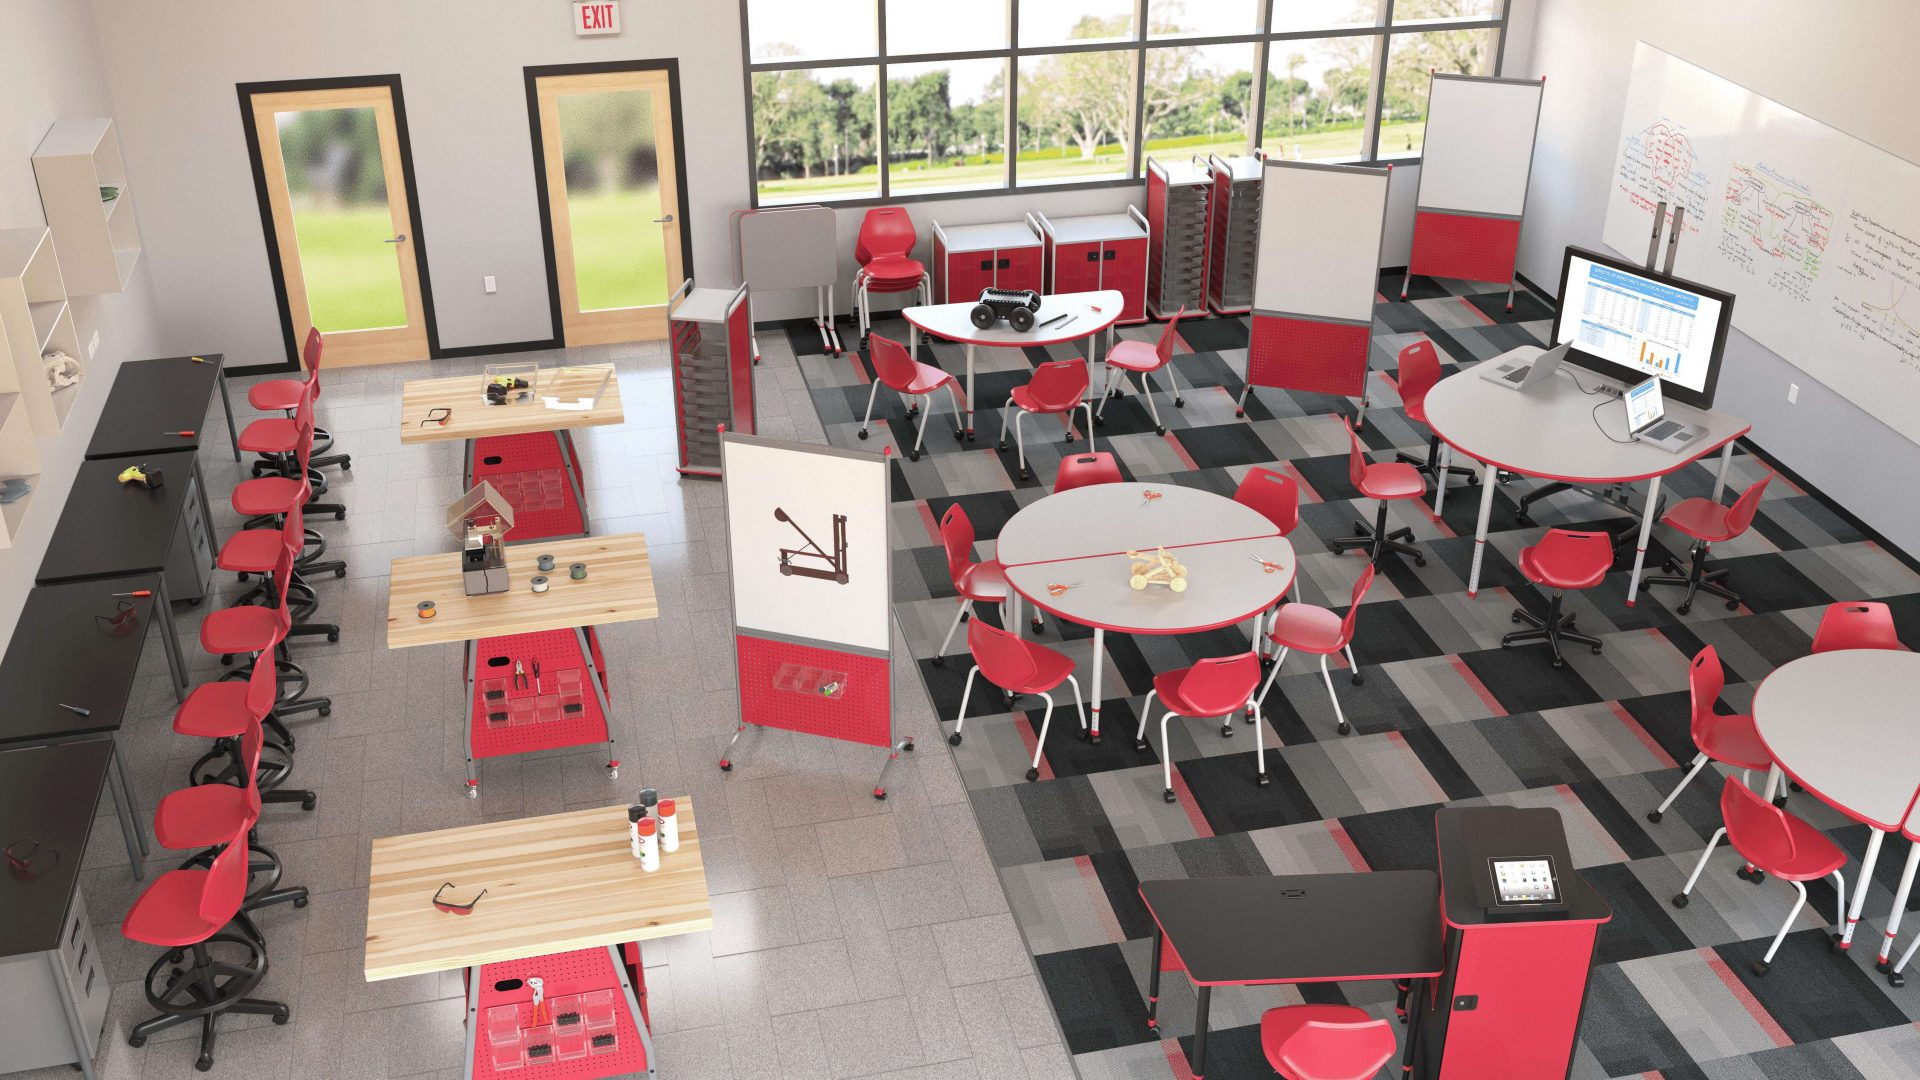 Birds Eye View Rendering Of Clroom With Red Collaborative School Desks And Chairs